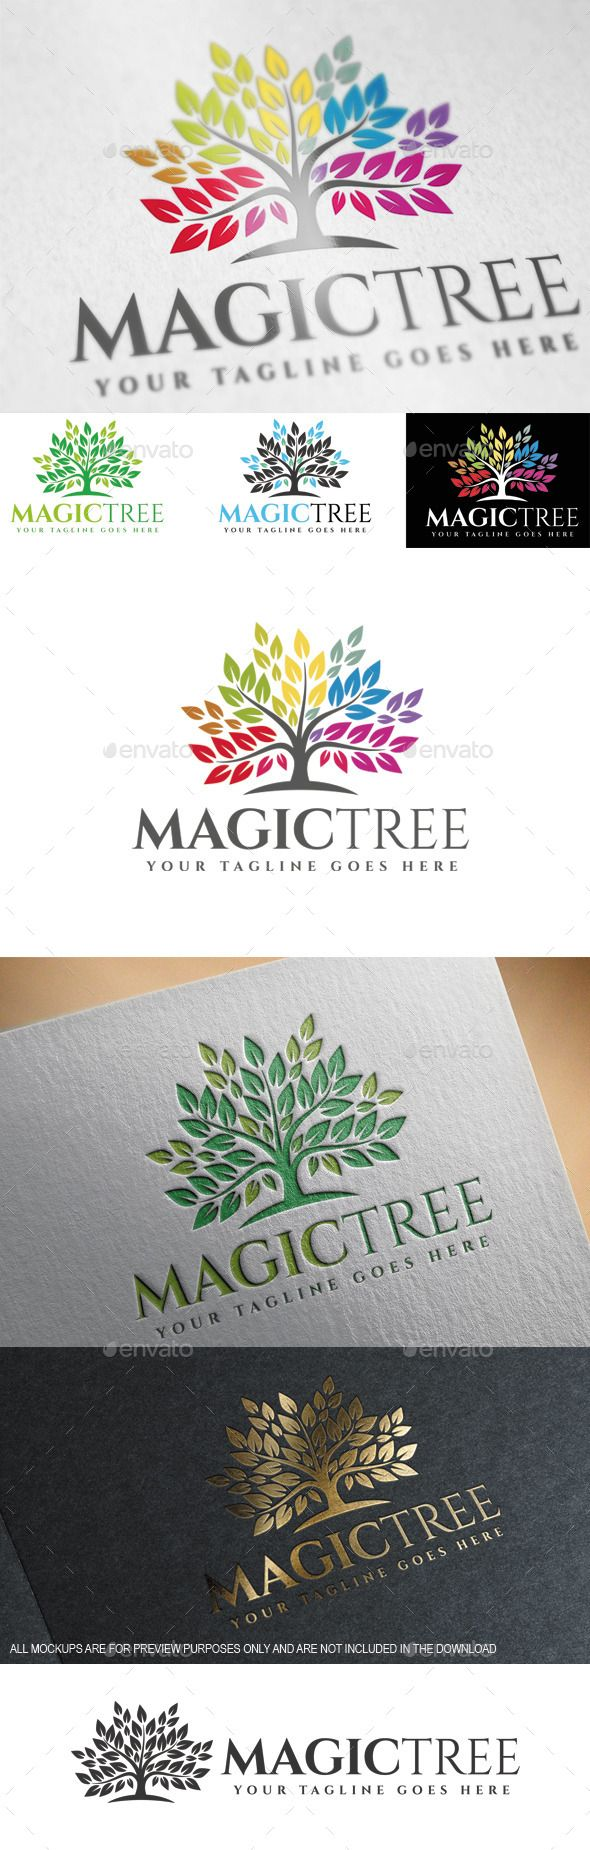 Magic Tree - Logo Design Template Vector #logotype Download it here: http://graphicriver.net/item/magic-tree-logo-template/9695732?s_rank=1552?ref=nesto